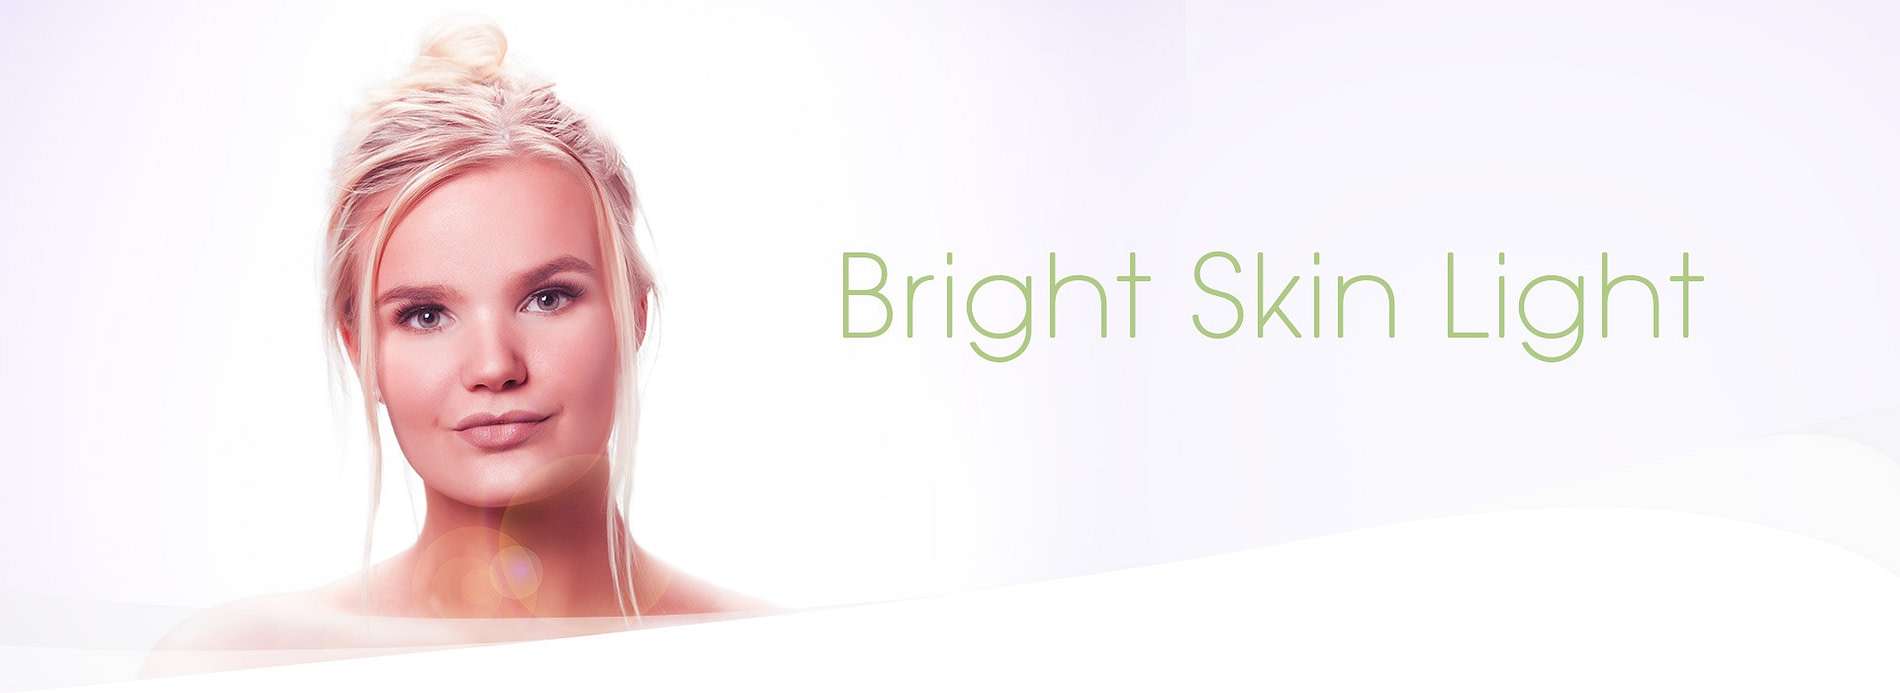 Dr. Muller header Bright Skin Light research